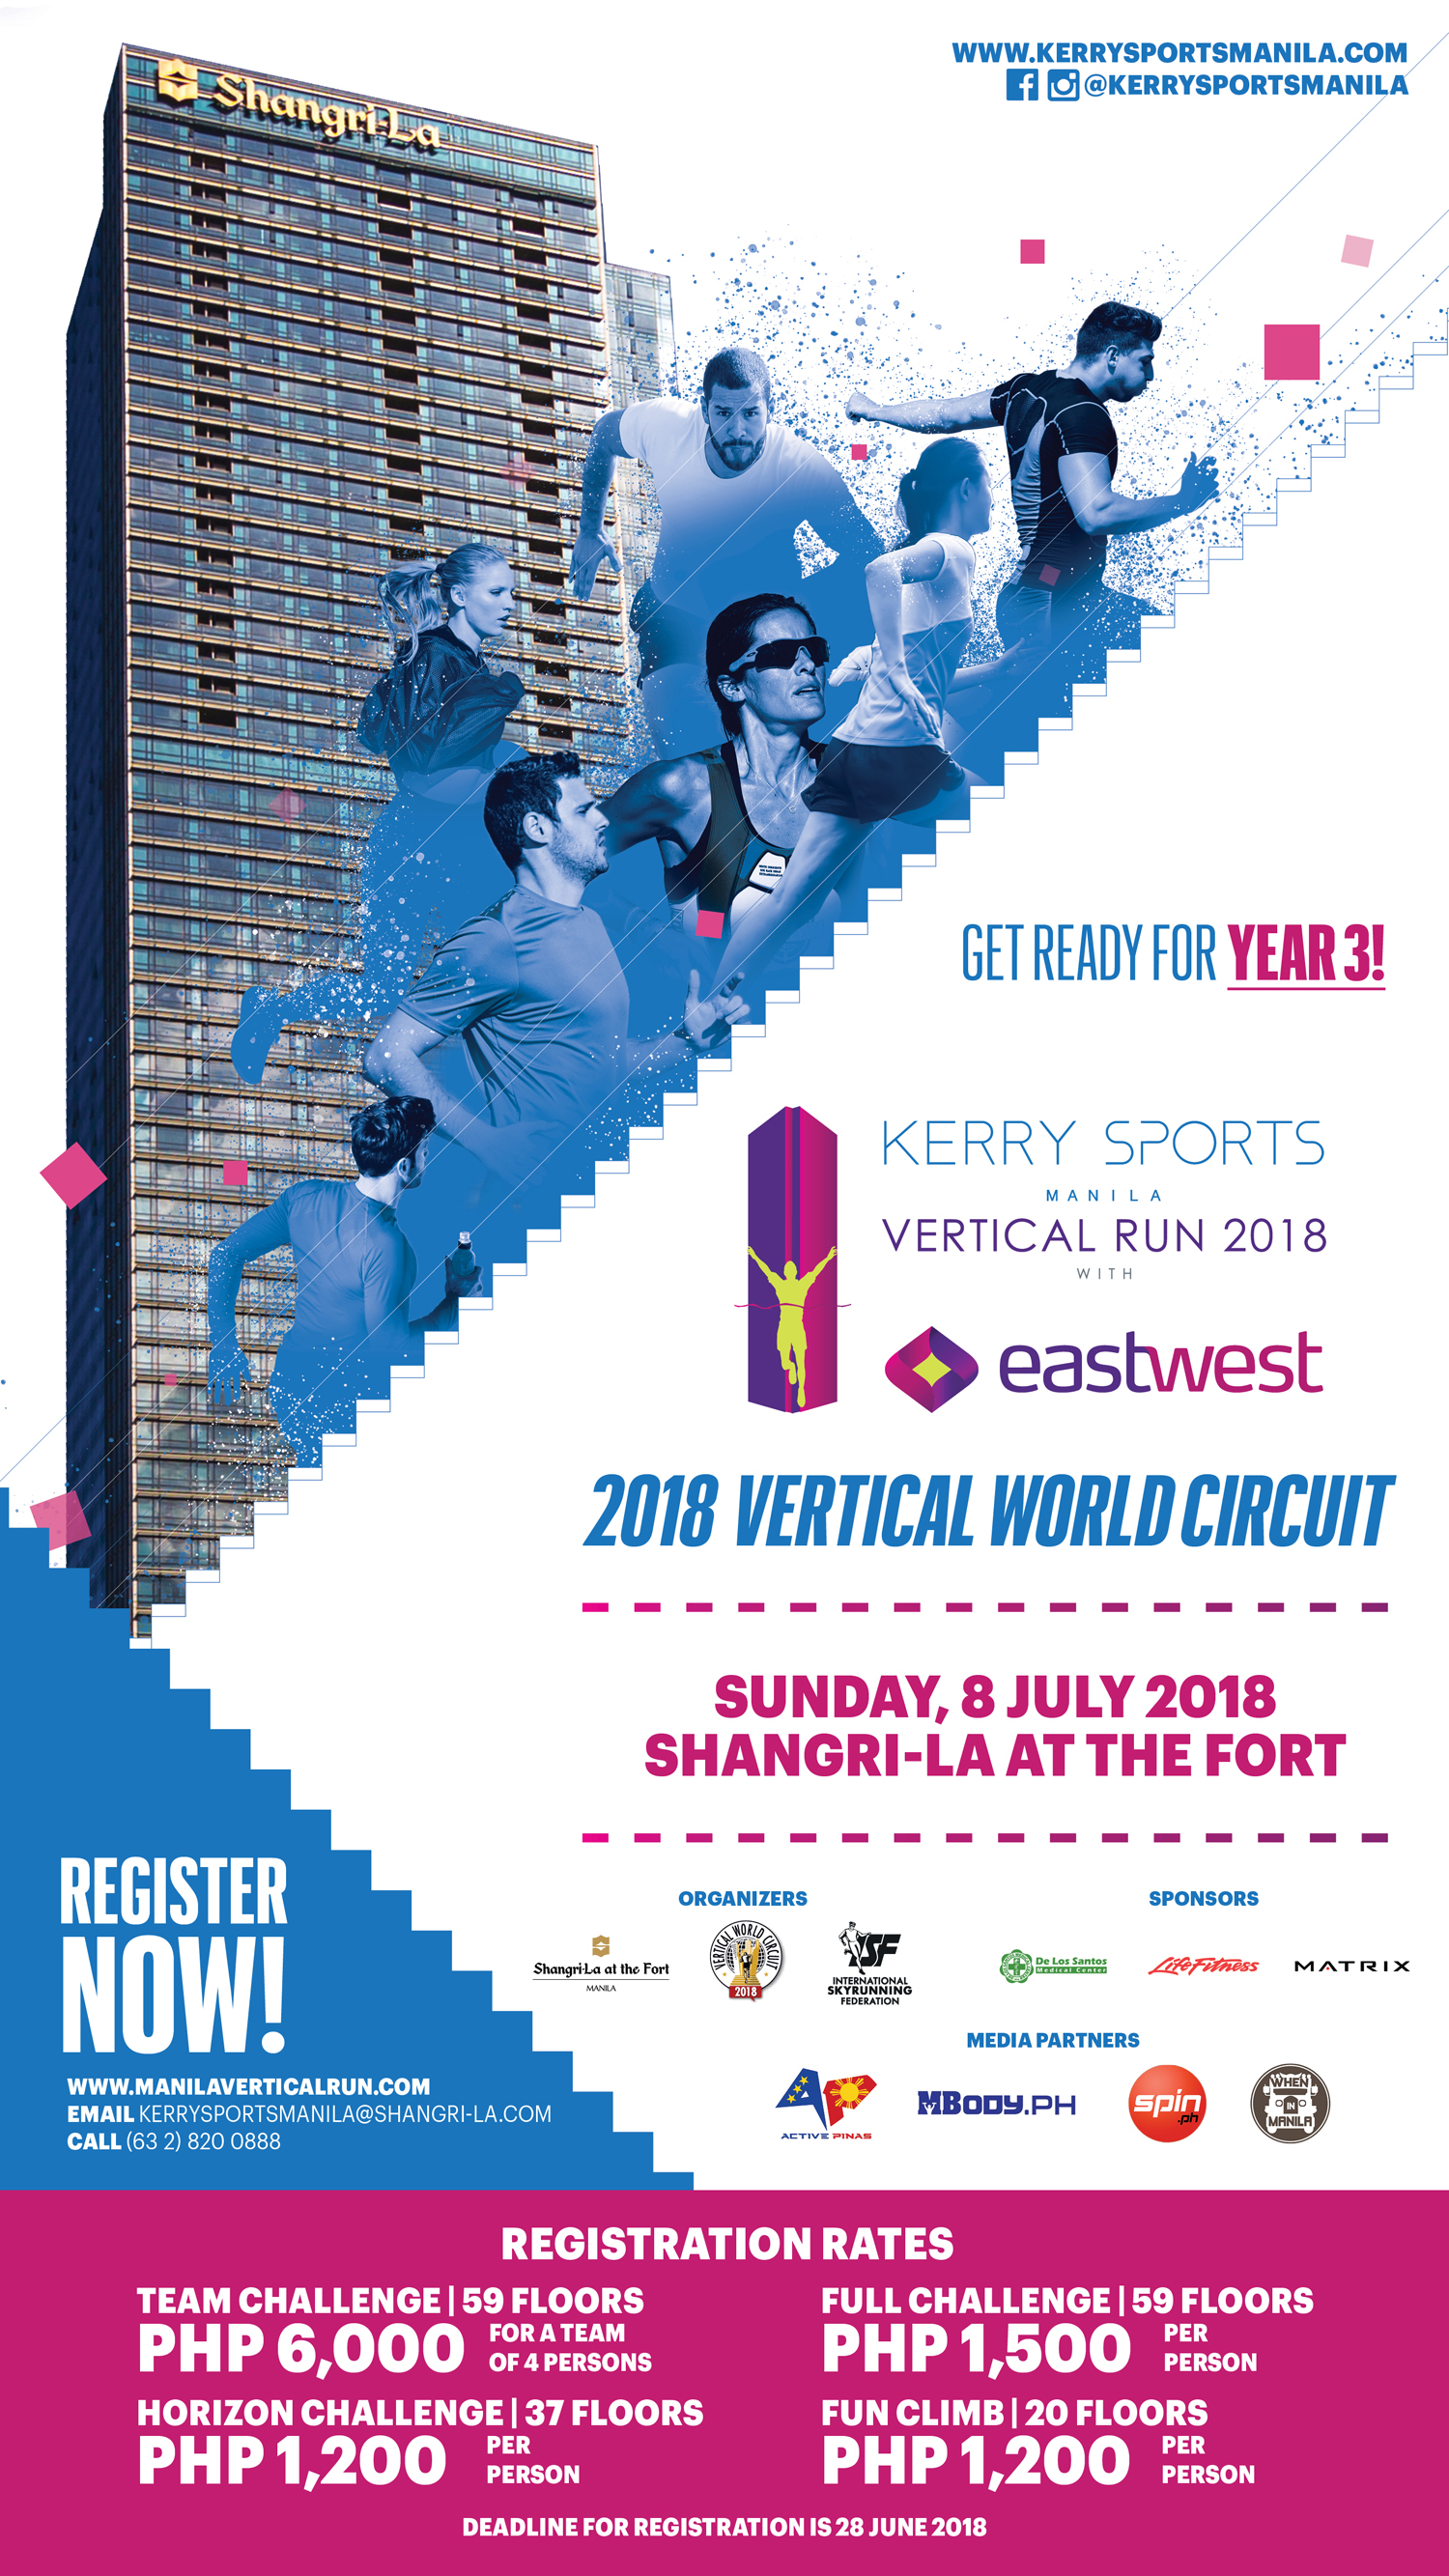 kerry sports vertical run 2018